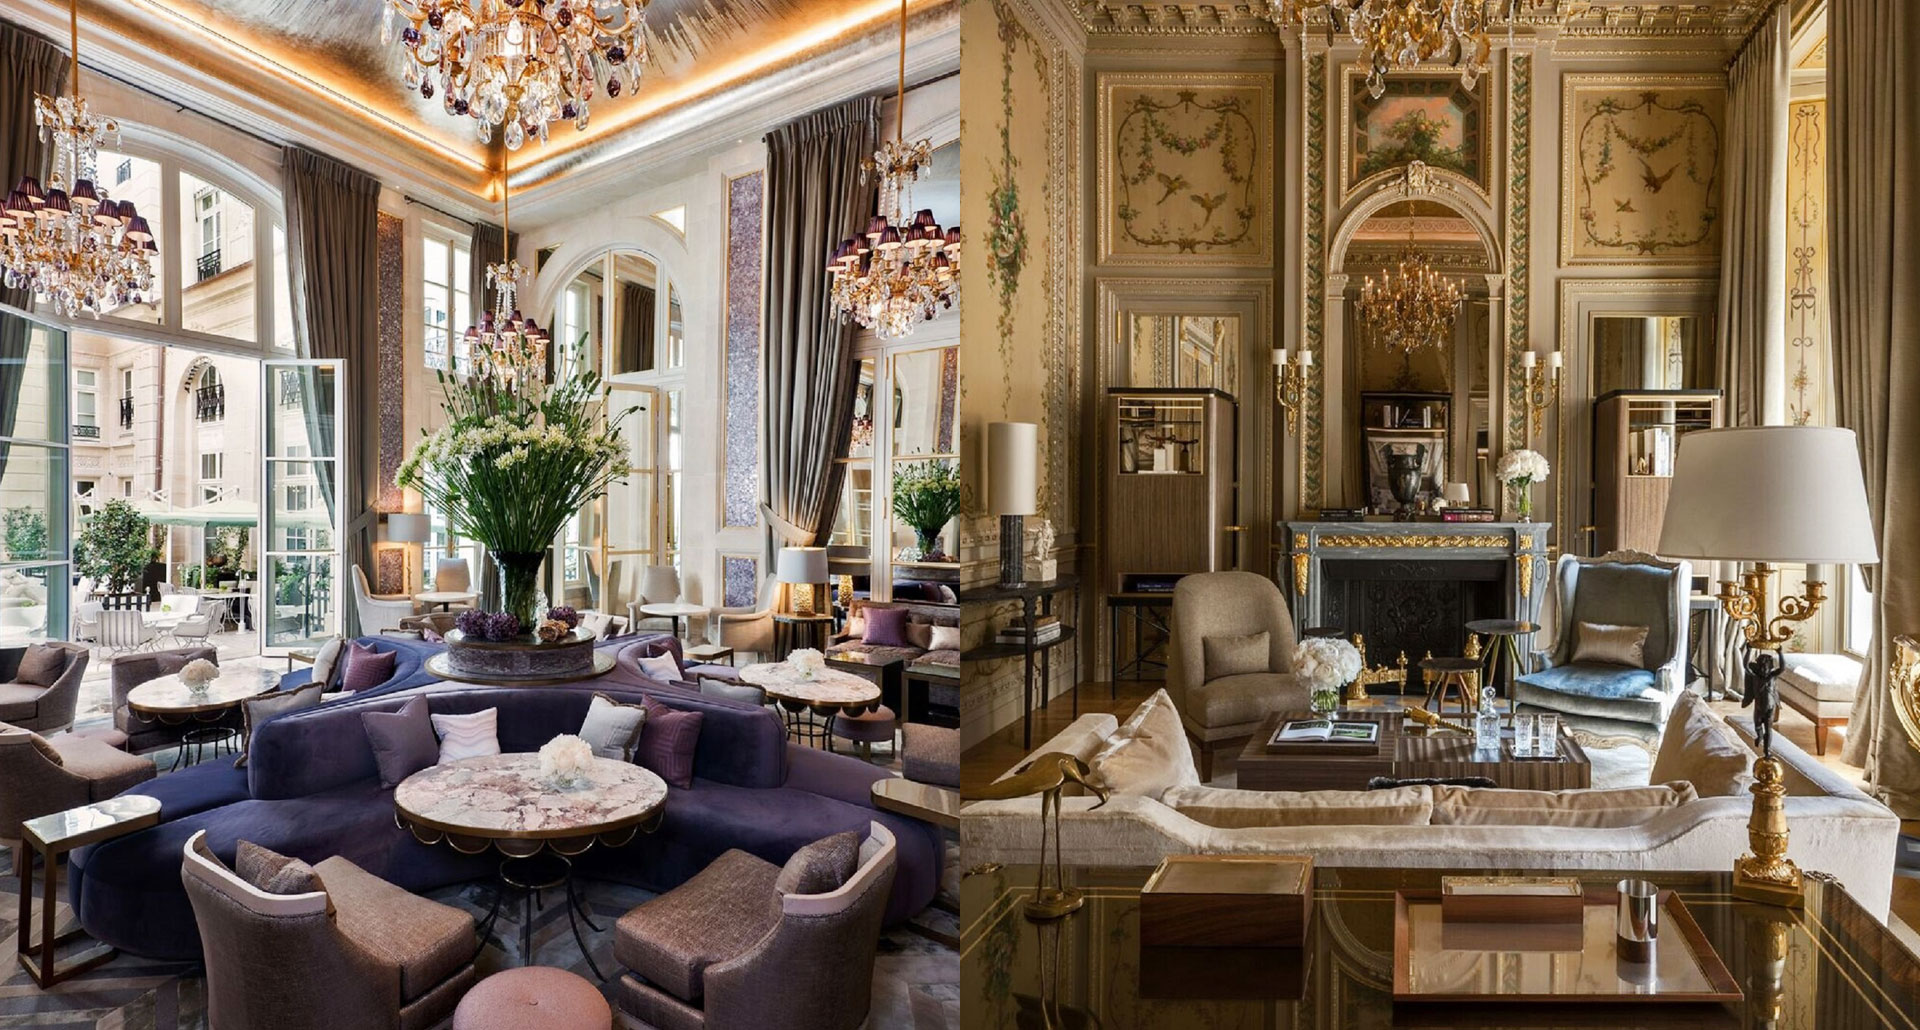 Hotel de Crillon boutique hotel in Paris, France